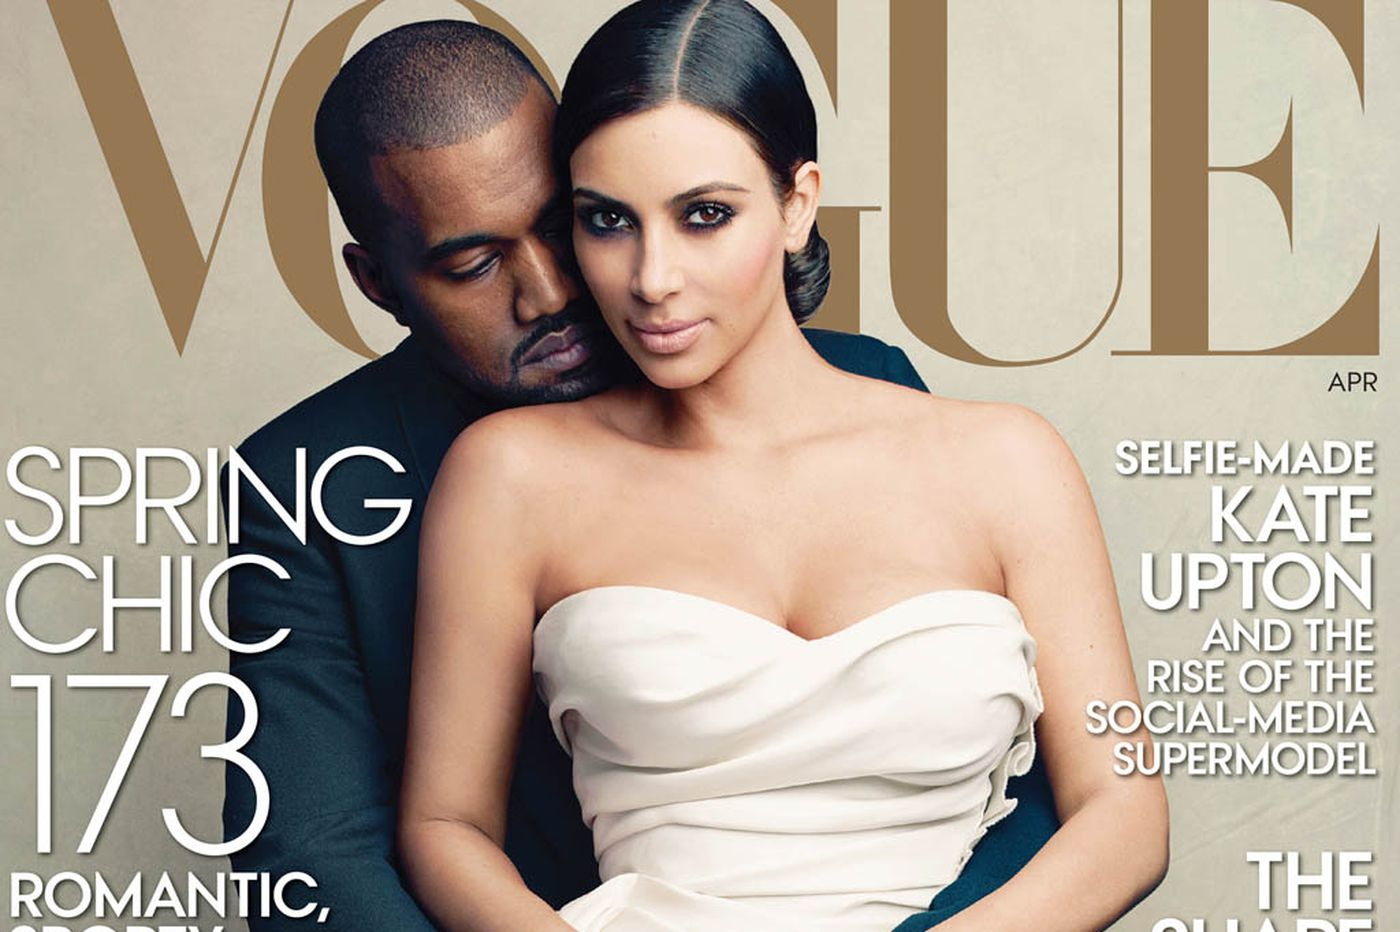 So, did 'Kimye' already seal the deal?